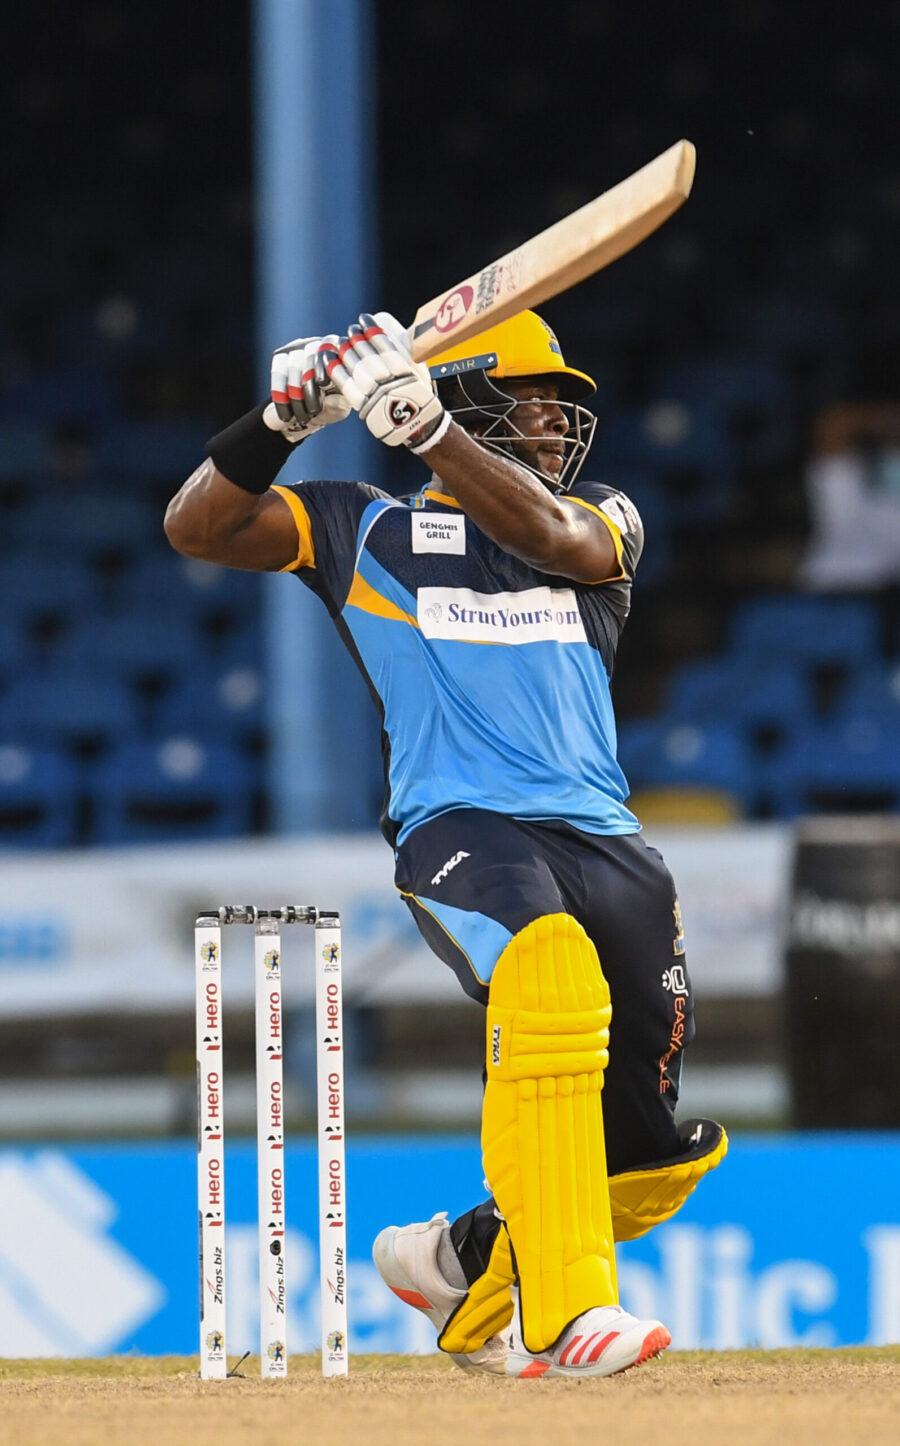 Mayers Leads Tridents to Victory over Tallawahs